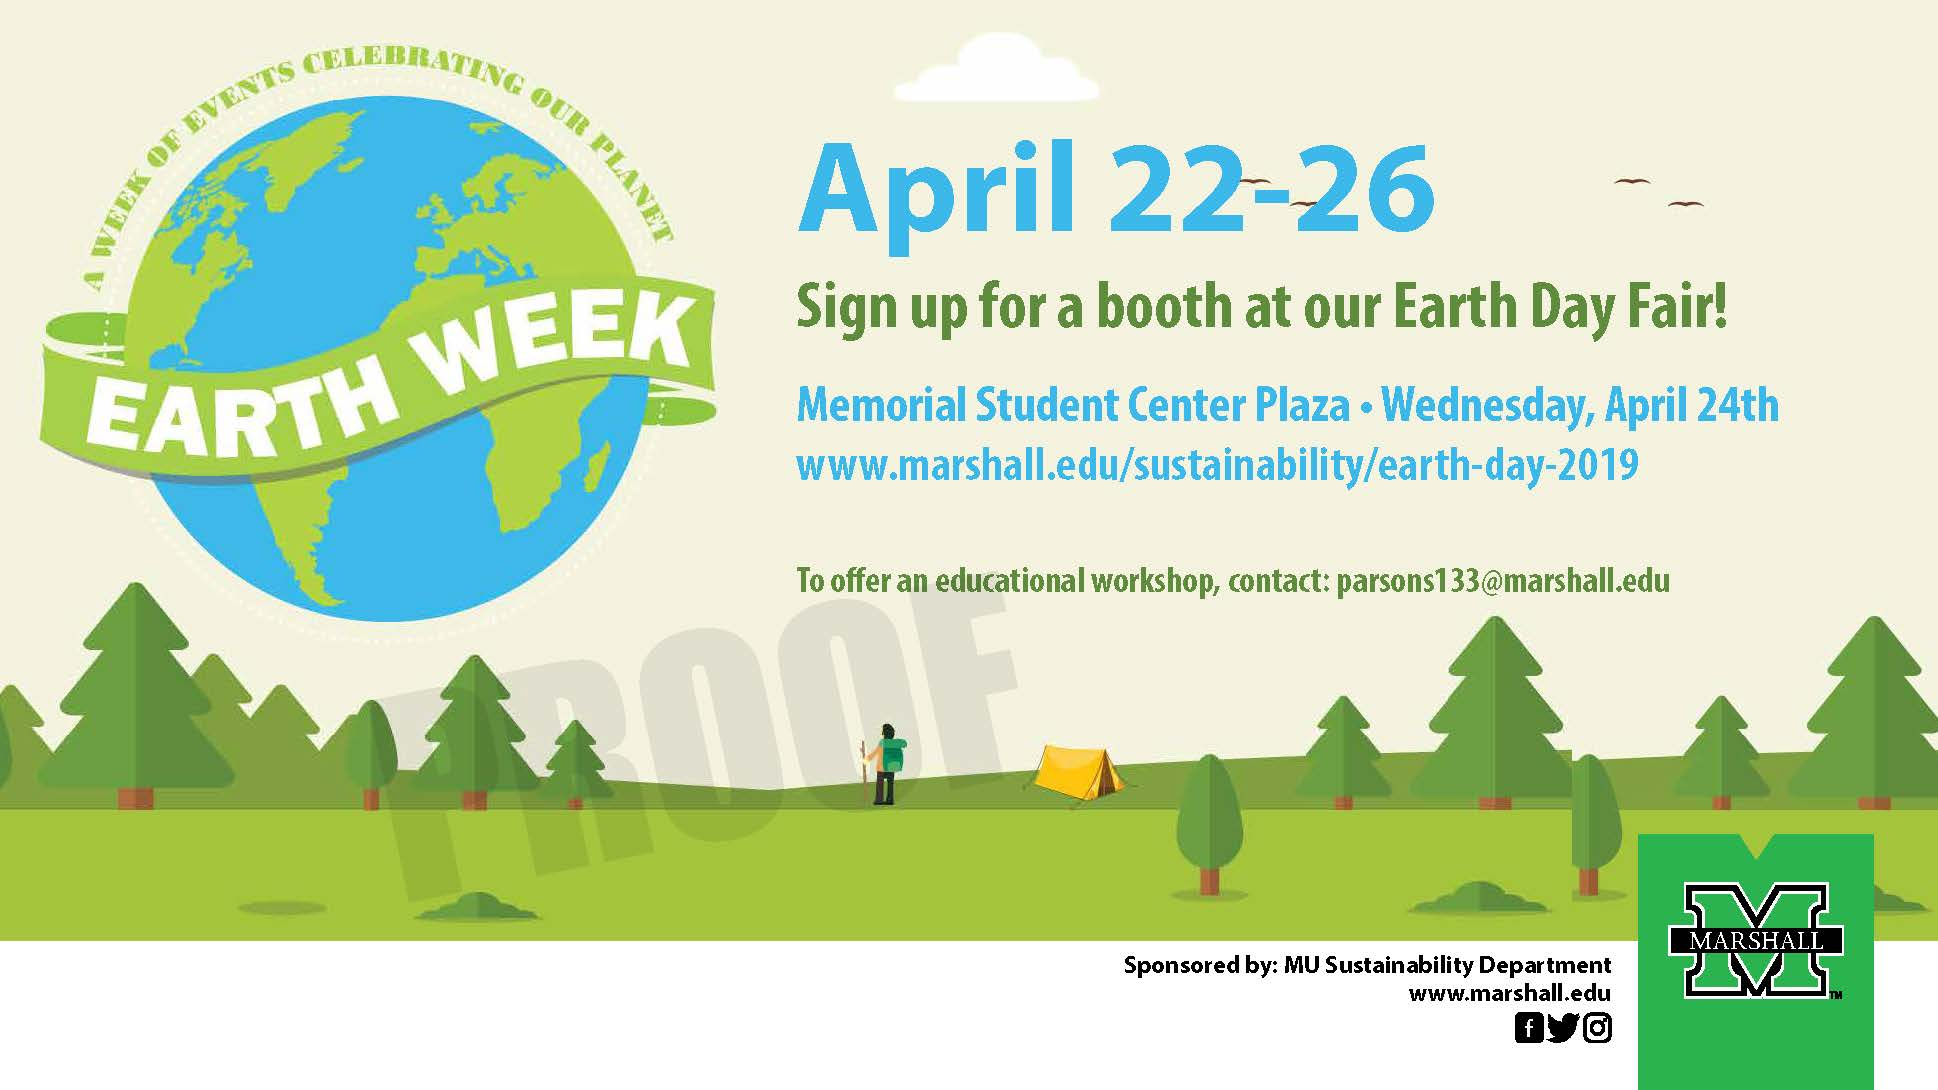 Earth Week April 22 – 26, 2019 – Sustainability Department